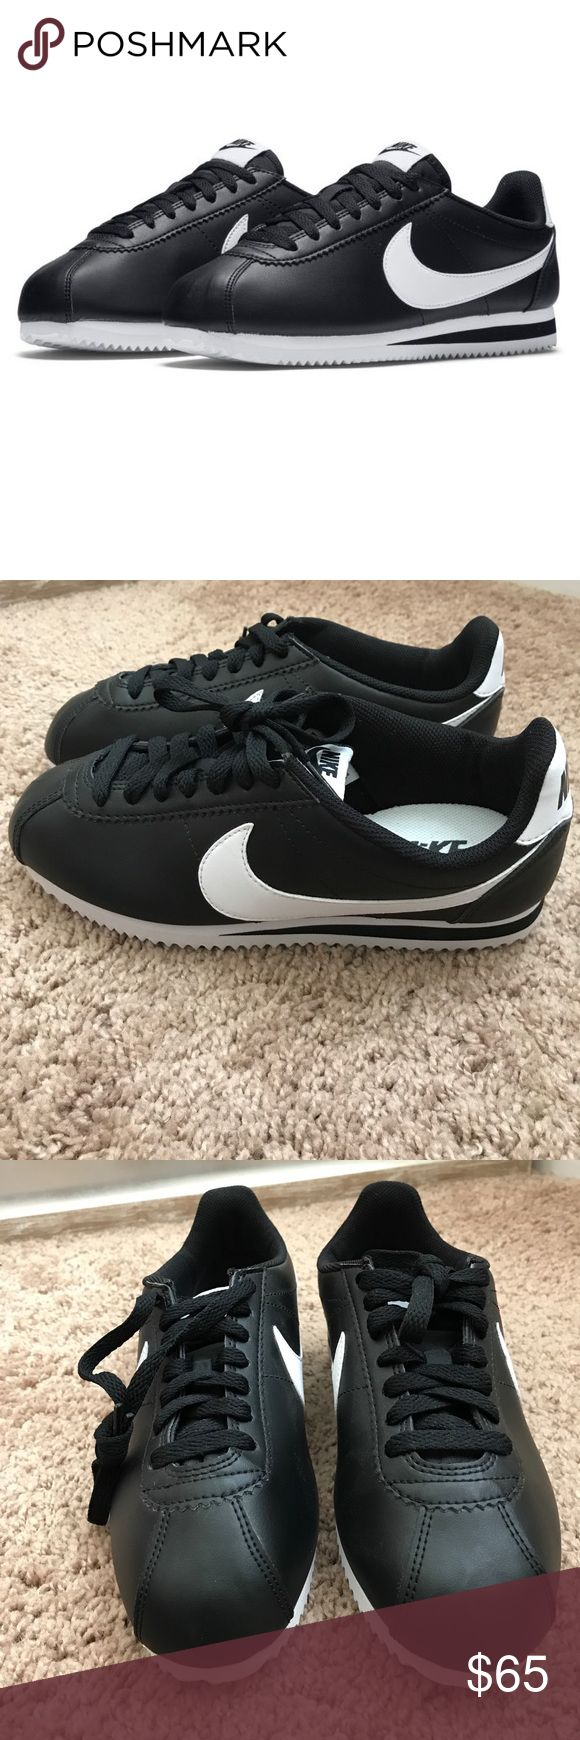 NWOT Nike Cortez New Nike Women's Classic Cortez Leather Shoes // Size 6.5 😎.               No tags,no box Nike Shoes